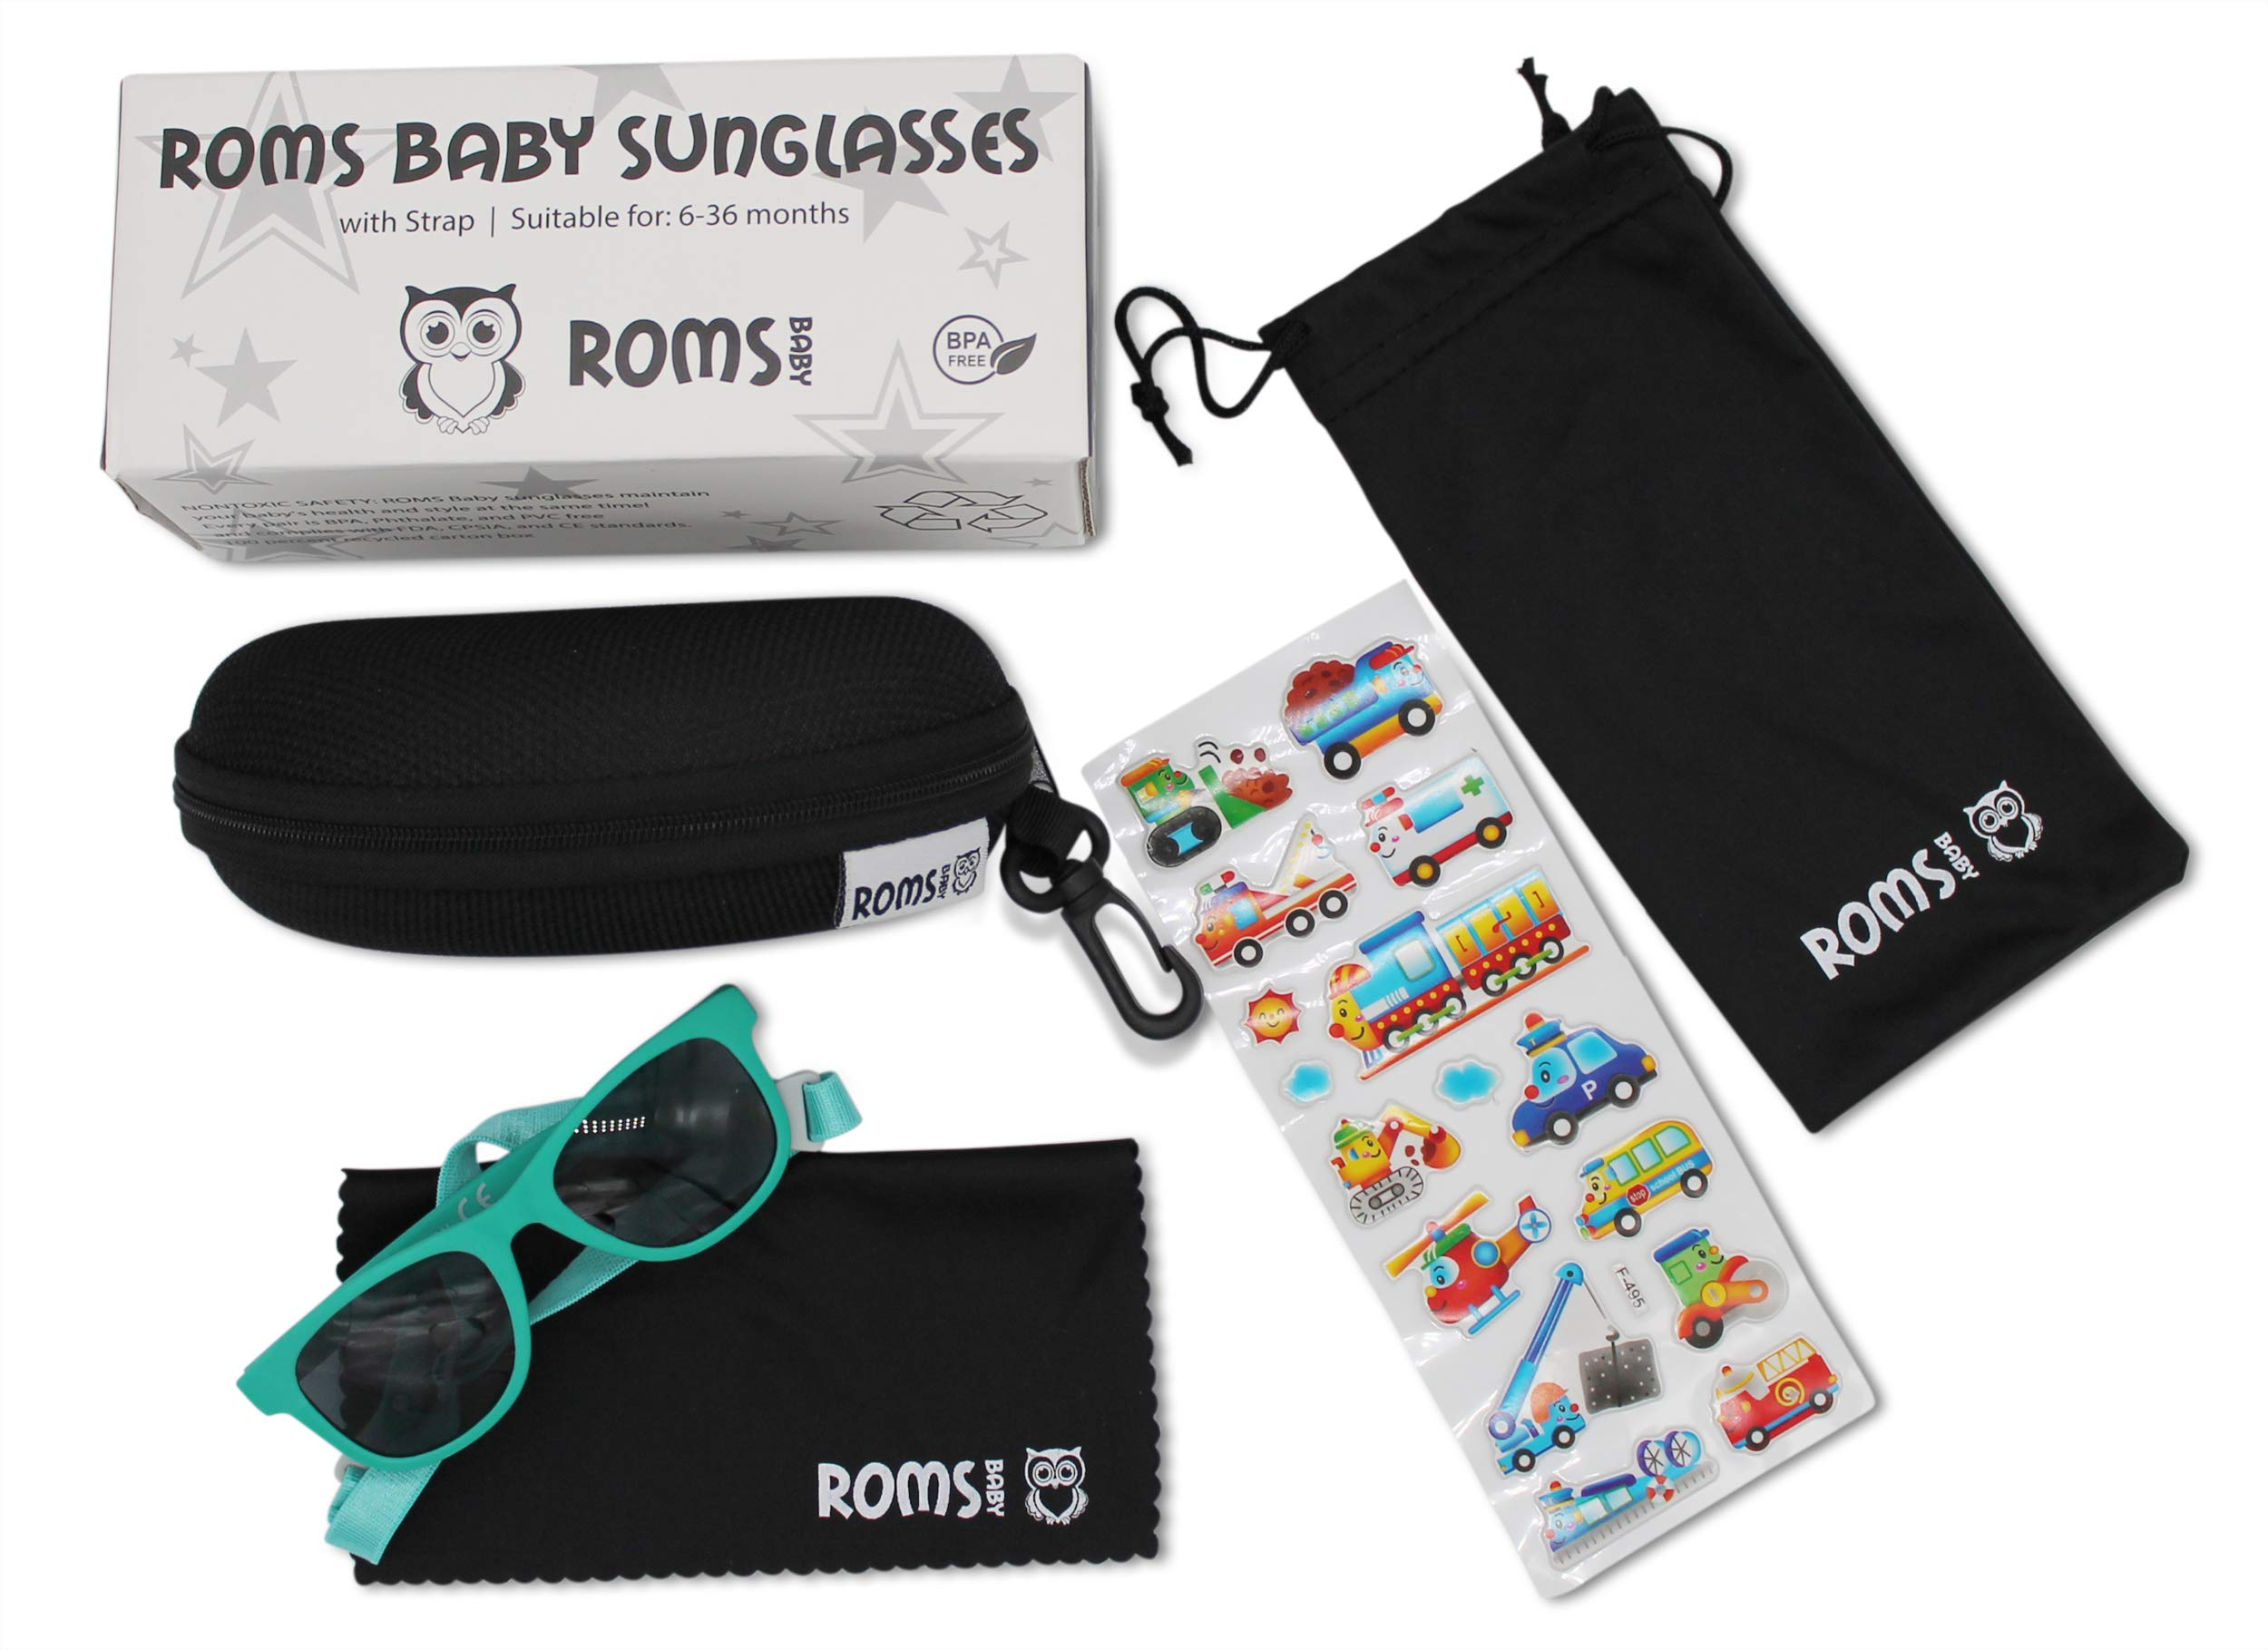 Baby Sunglasses with Strap - 400 UV Protection Polarized Lenses - Unisex Toddler/Kid. Shatterproof W/Soft Pouch and Hard Case - Ages 6 mos. to 3 years - Turquoise - FDA Approved